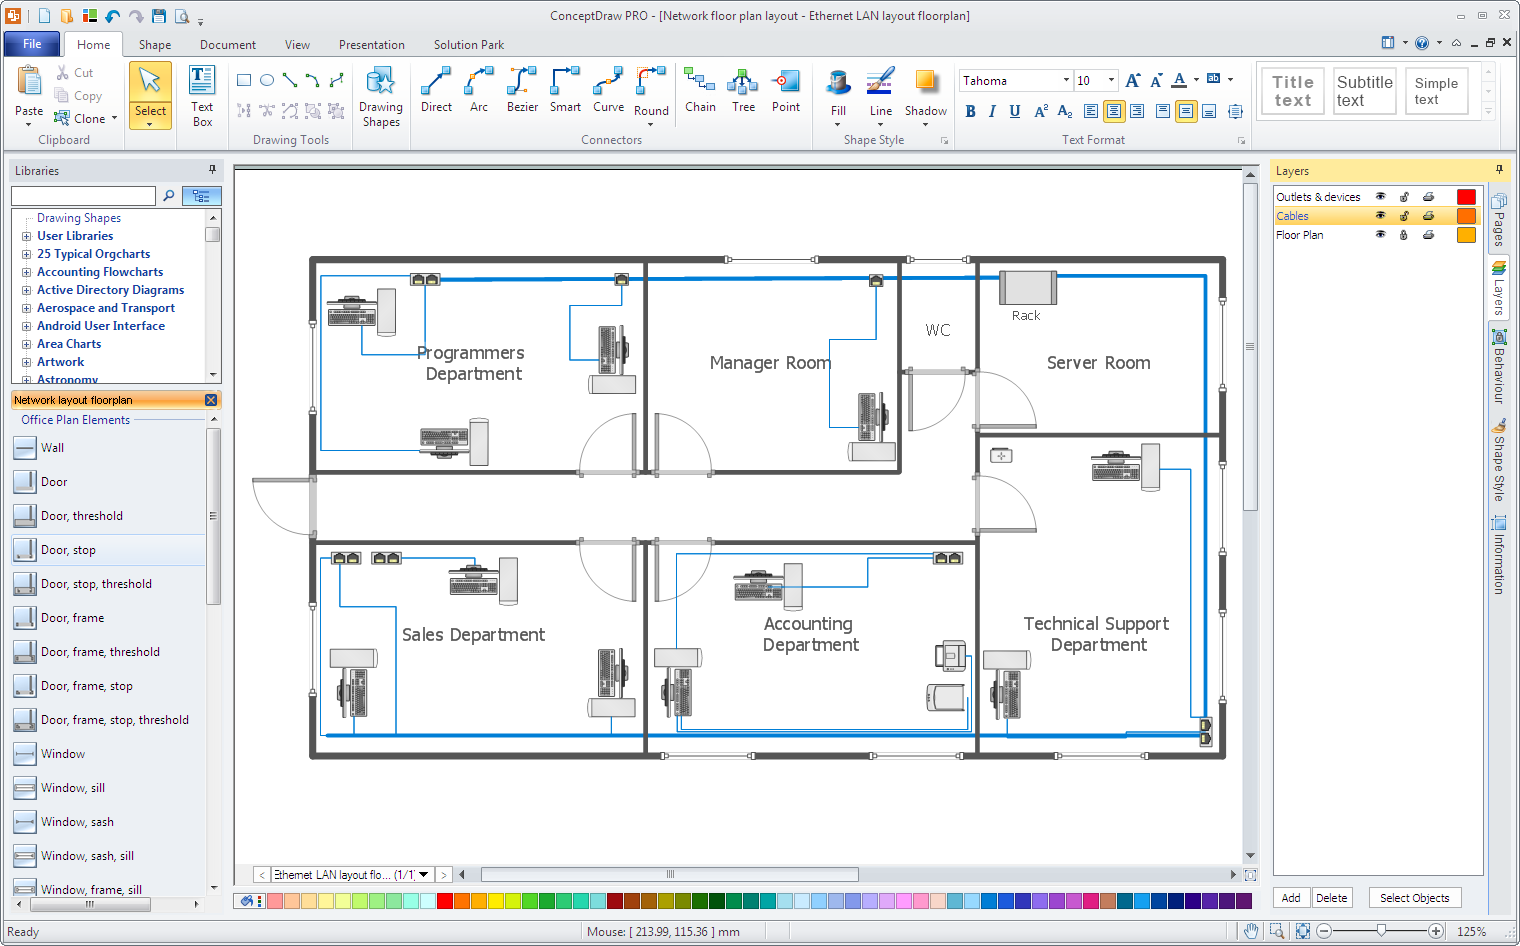 Office network floor plan for Creation plan